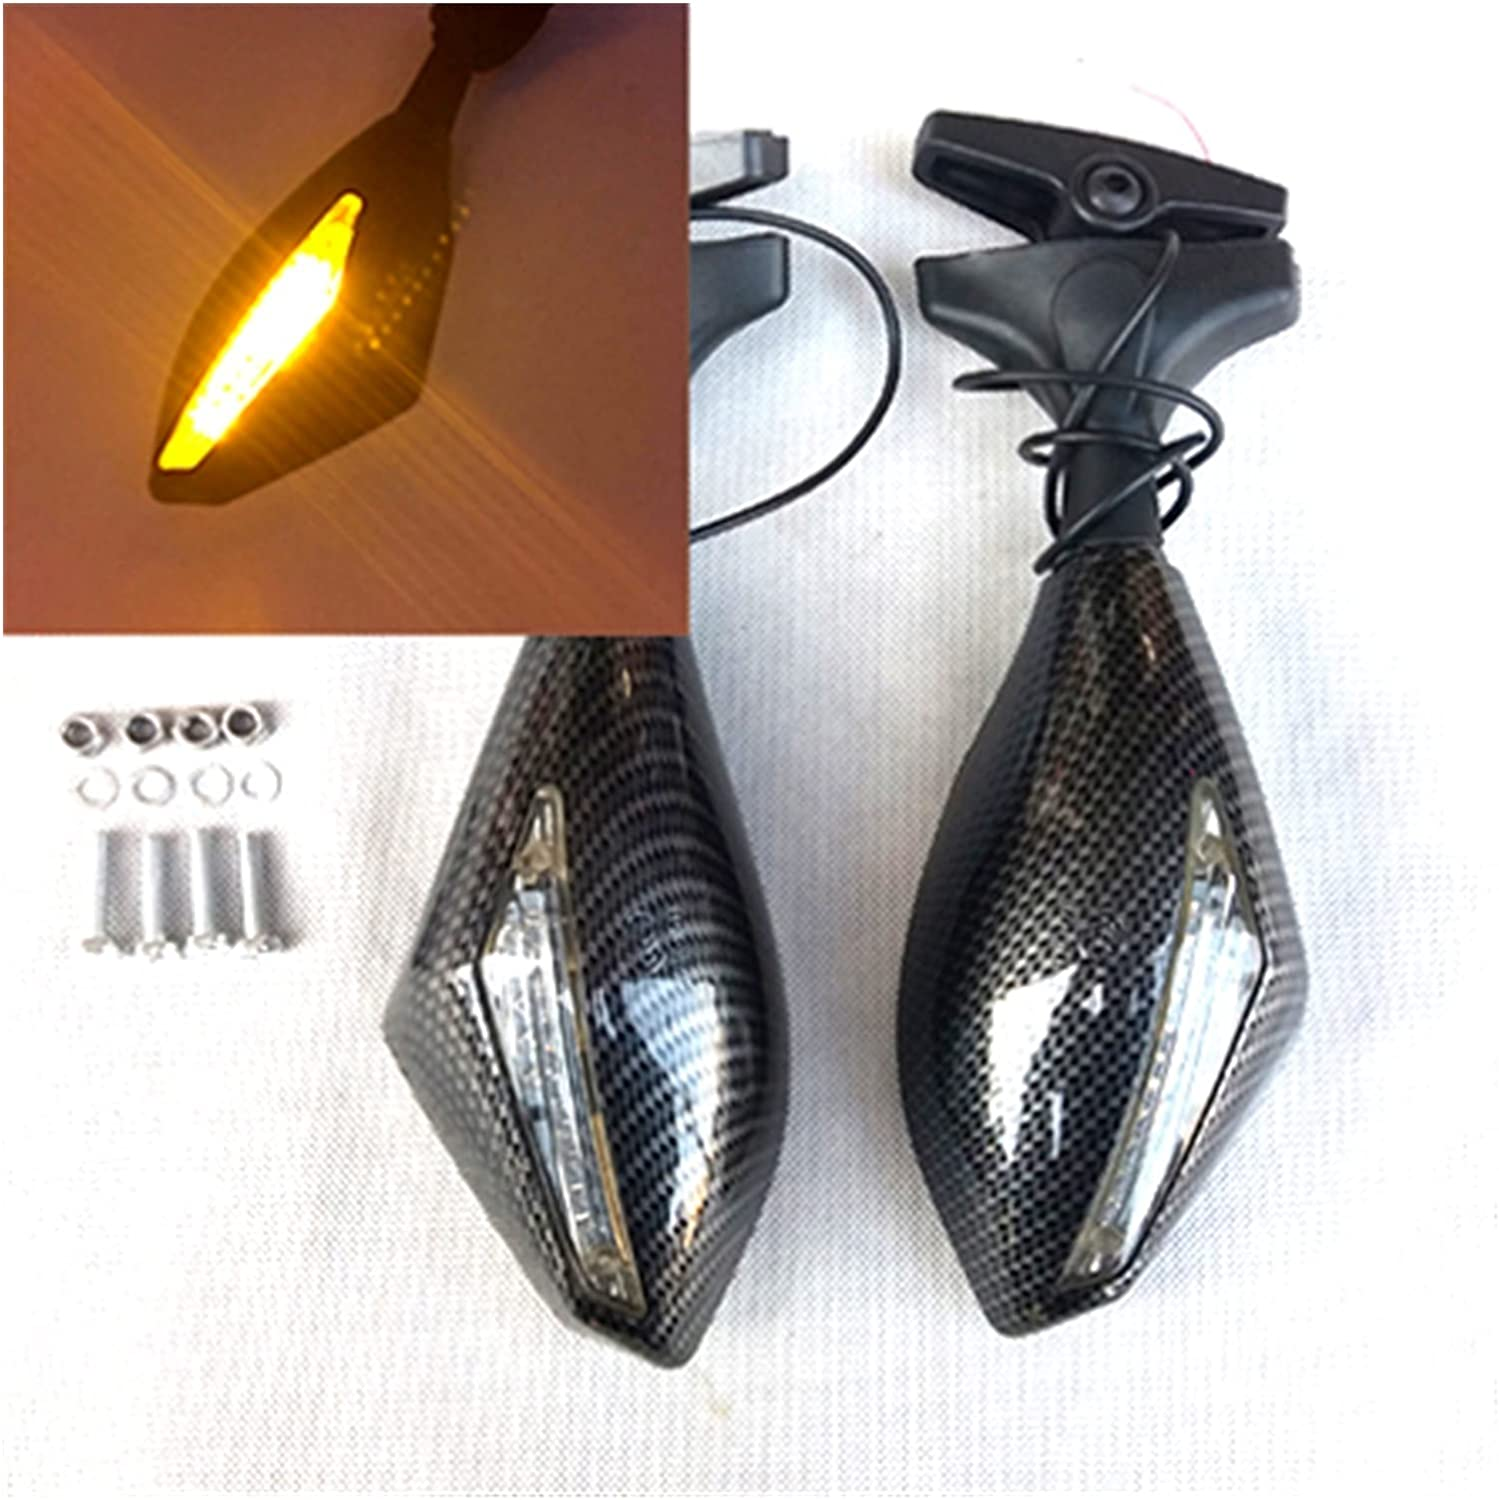 XHSK Max Colorado Springs Mall 74% OFF Motorcycle Rearview Mirror with for Honda Light Turning CBR